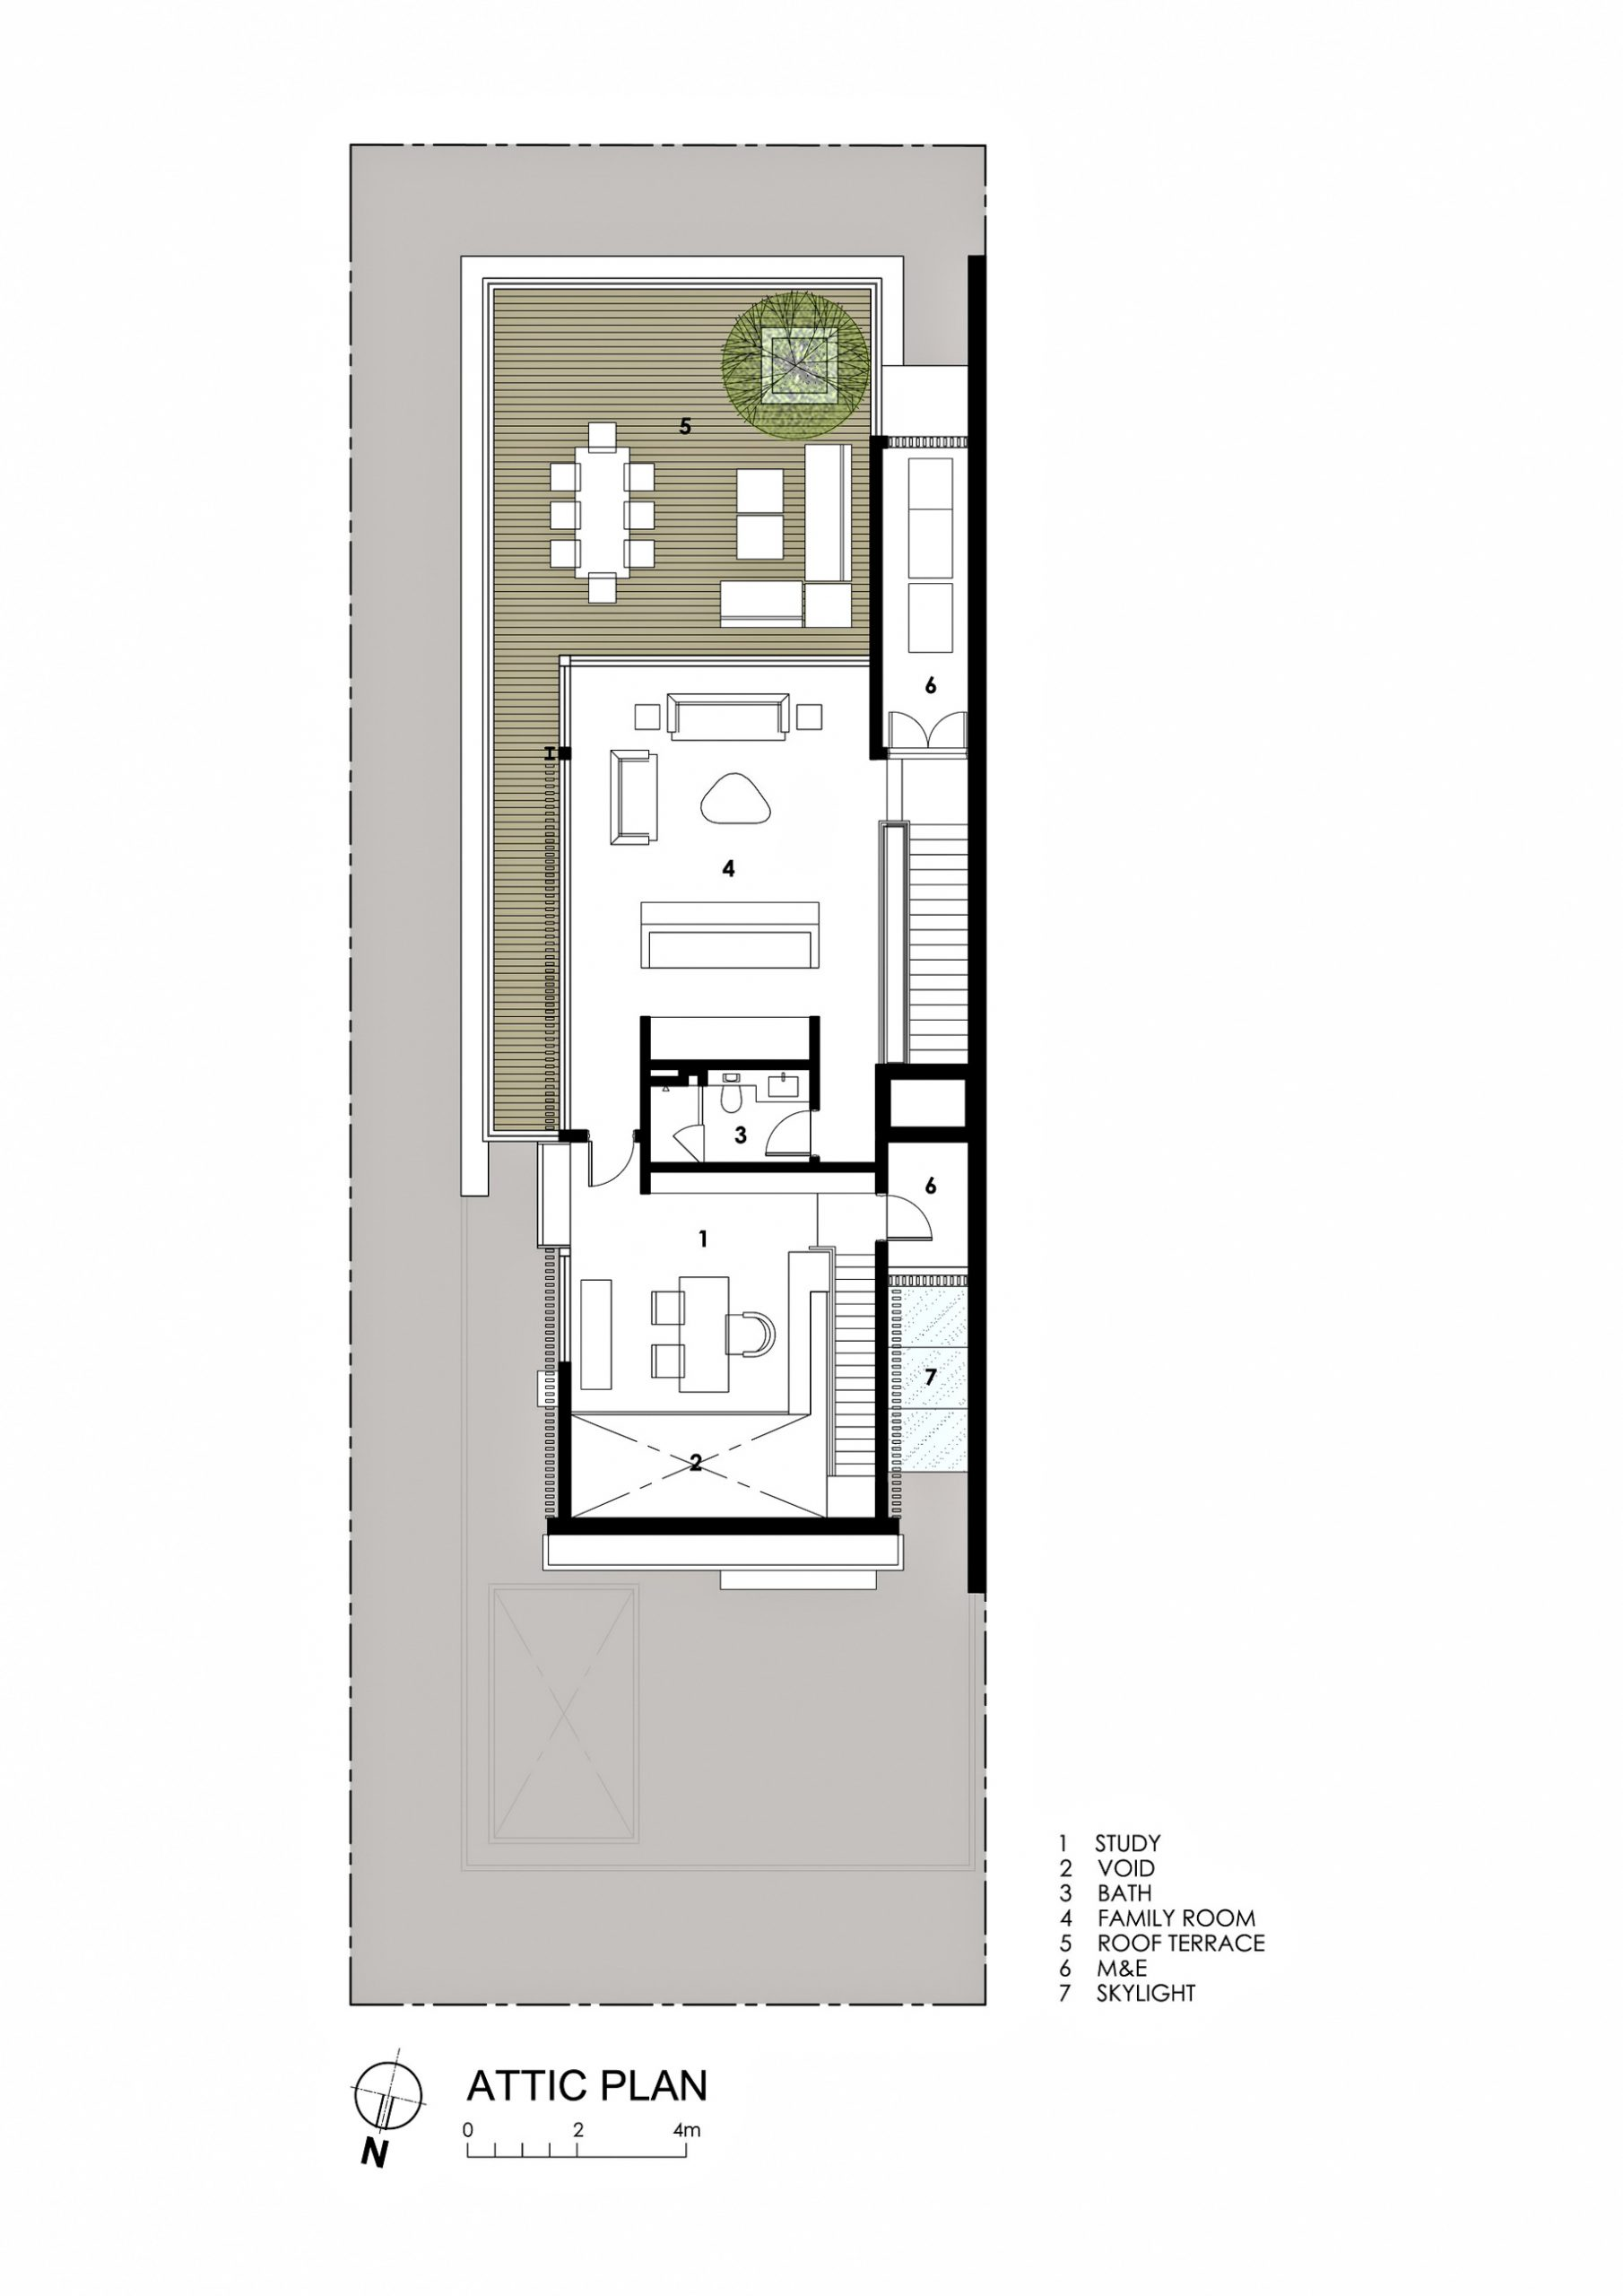 Attic Floor Plan - Far Sight House Luxury Residence - Bukit Timah, Singapore